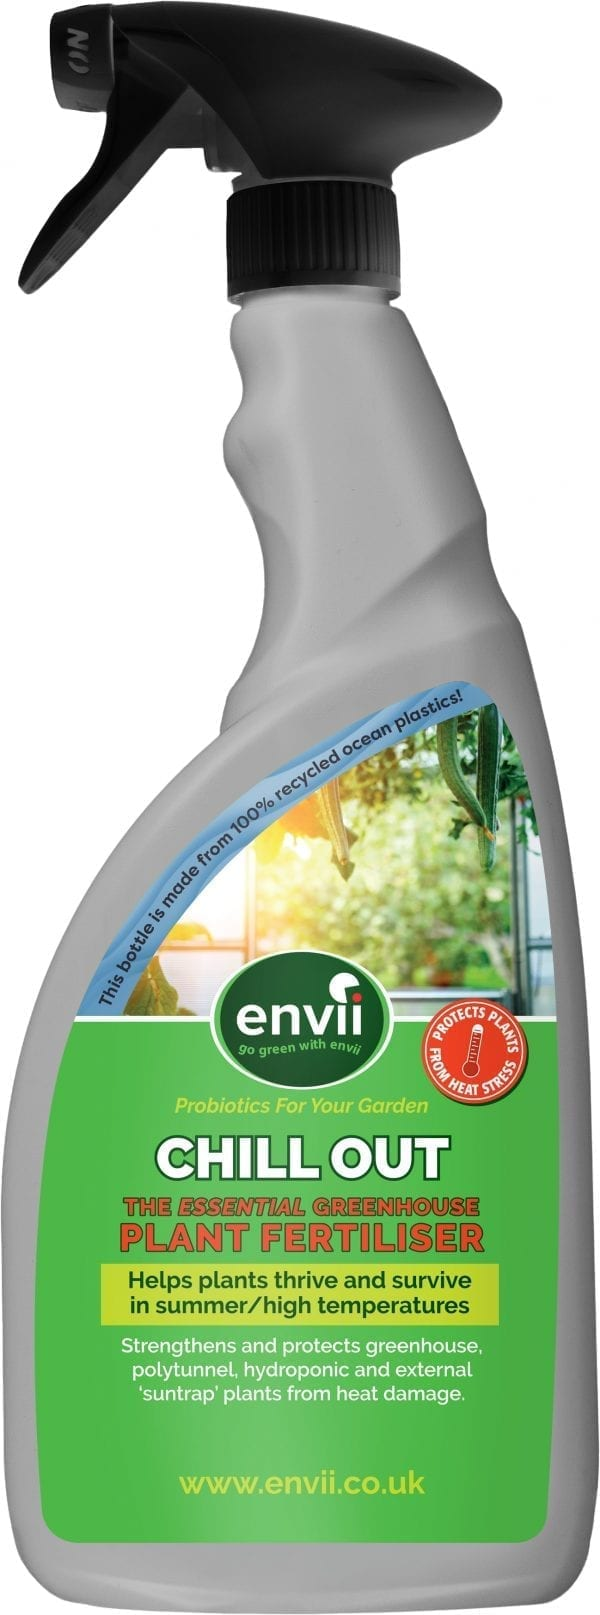 Chill Out 750ml Bottle our sun protection for plants